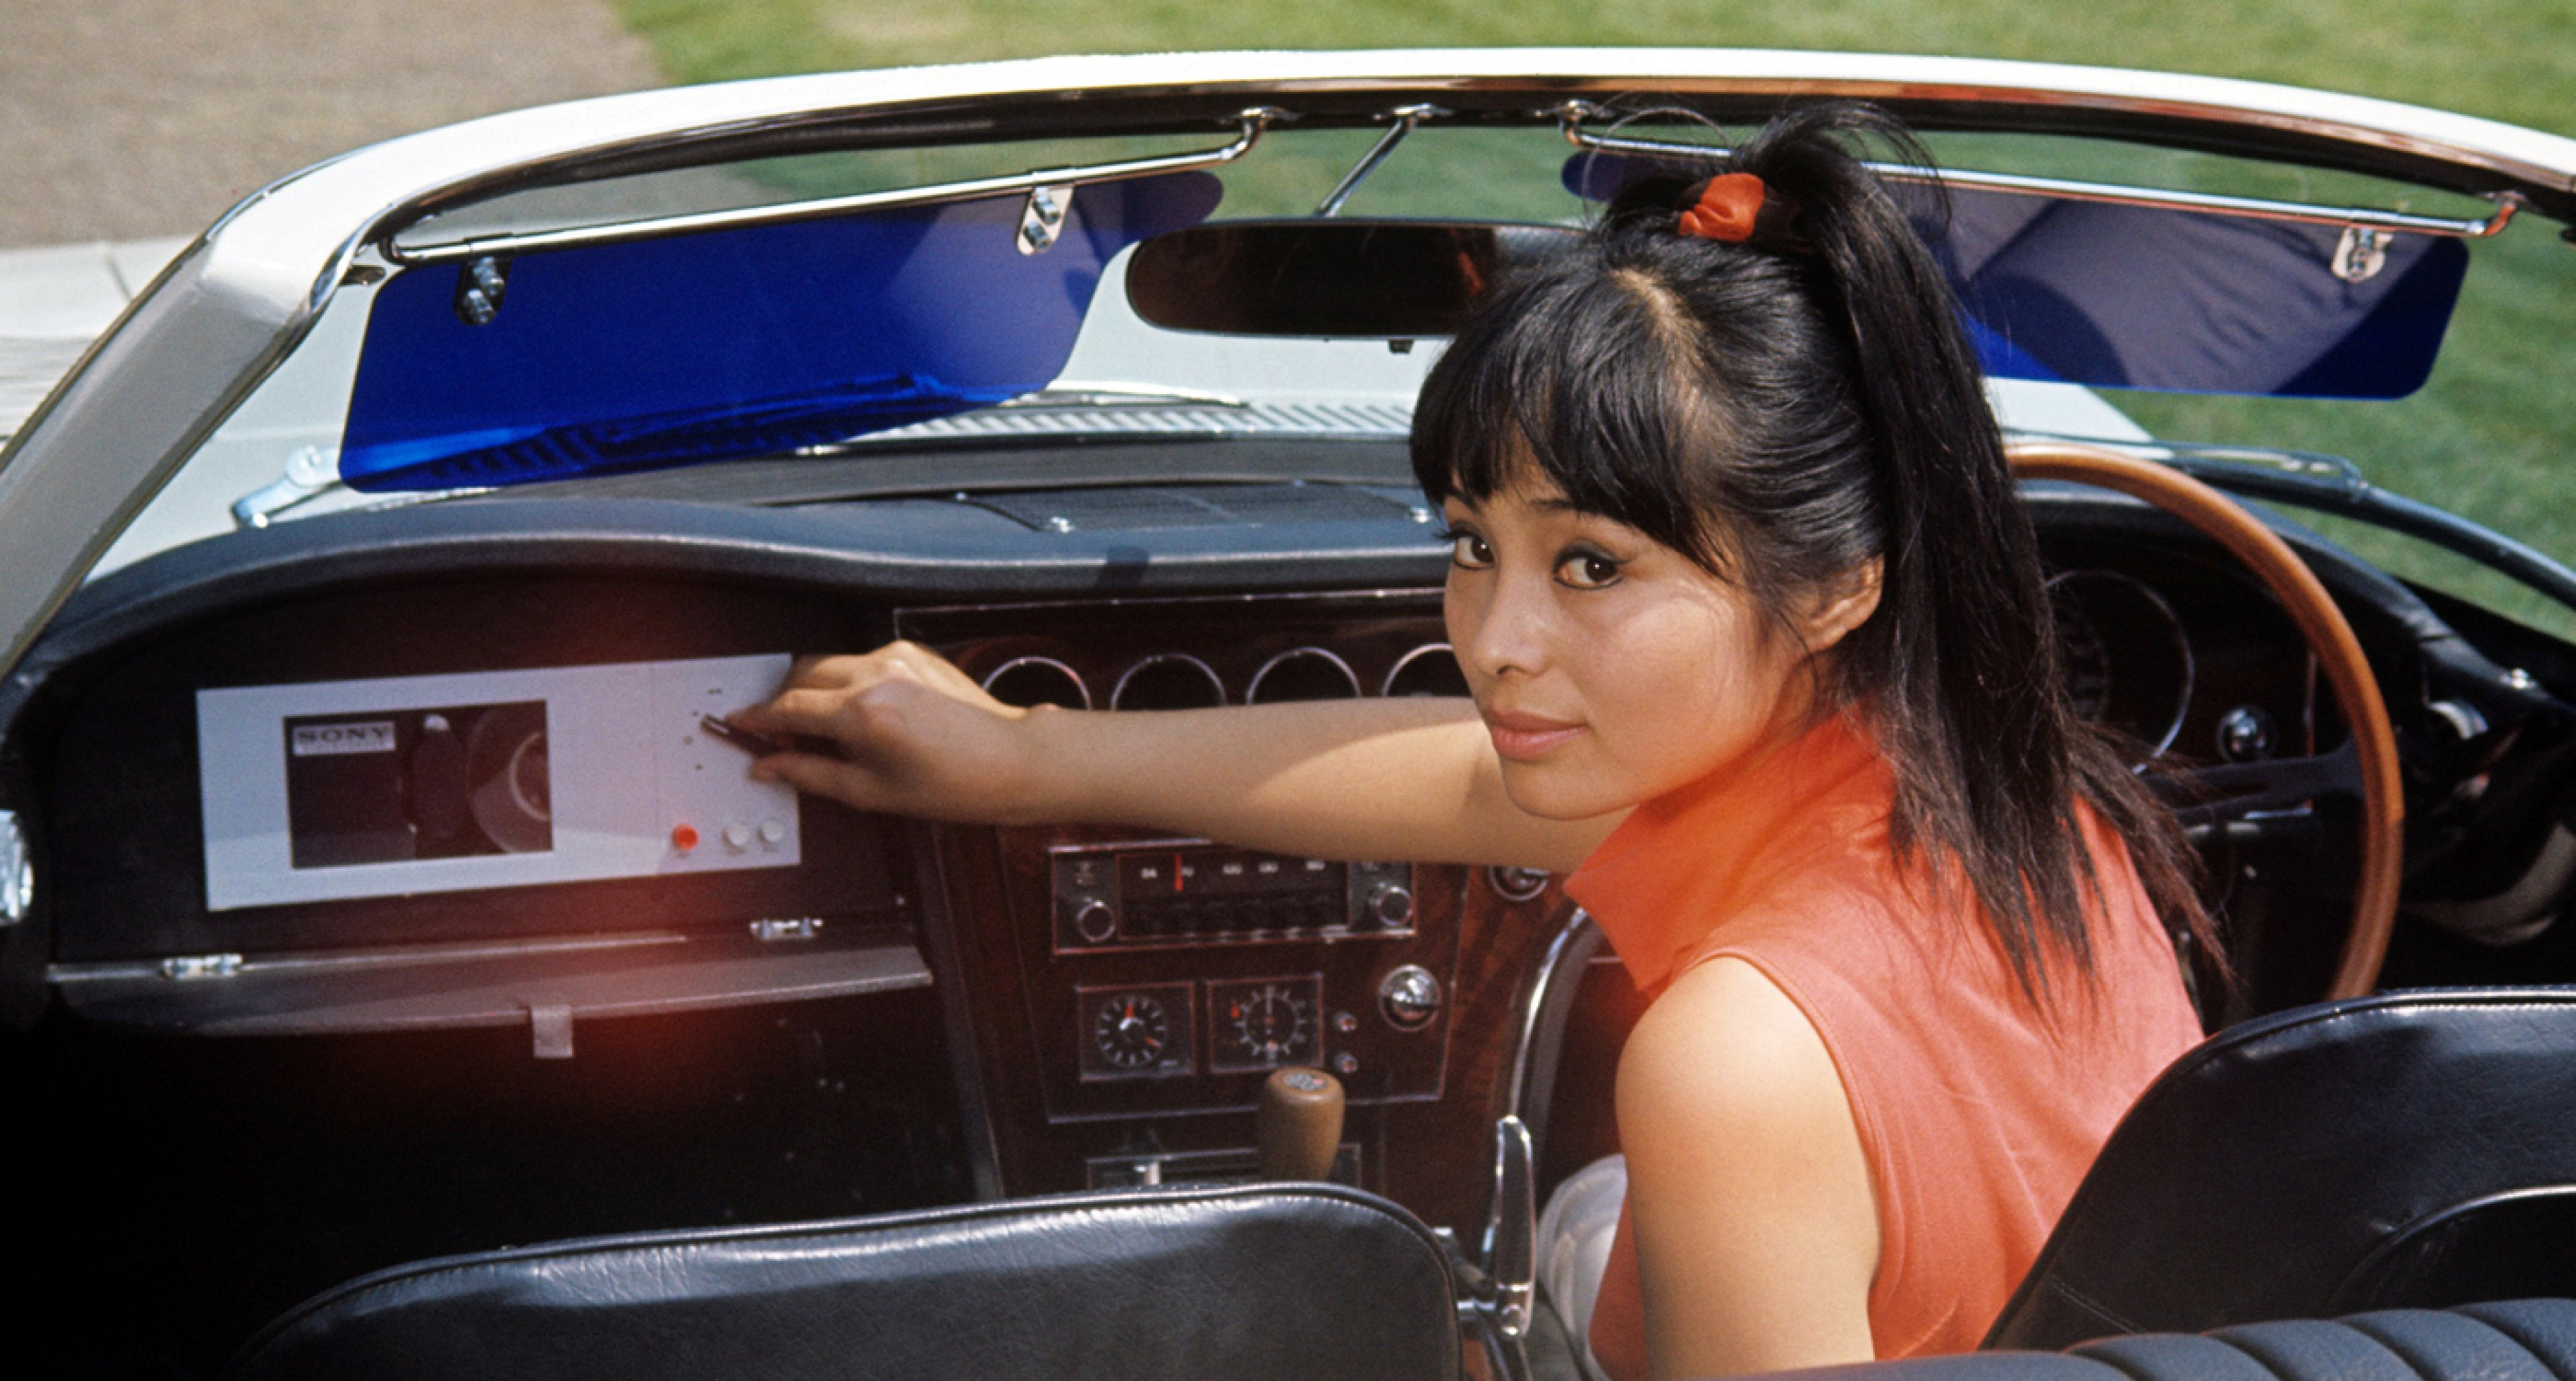 Akiko Wakabayashi as Bond Girl Aki, driving a one-off Toyota 2000 GT convertible in 'You Only Live Twice'.